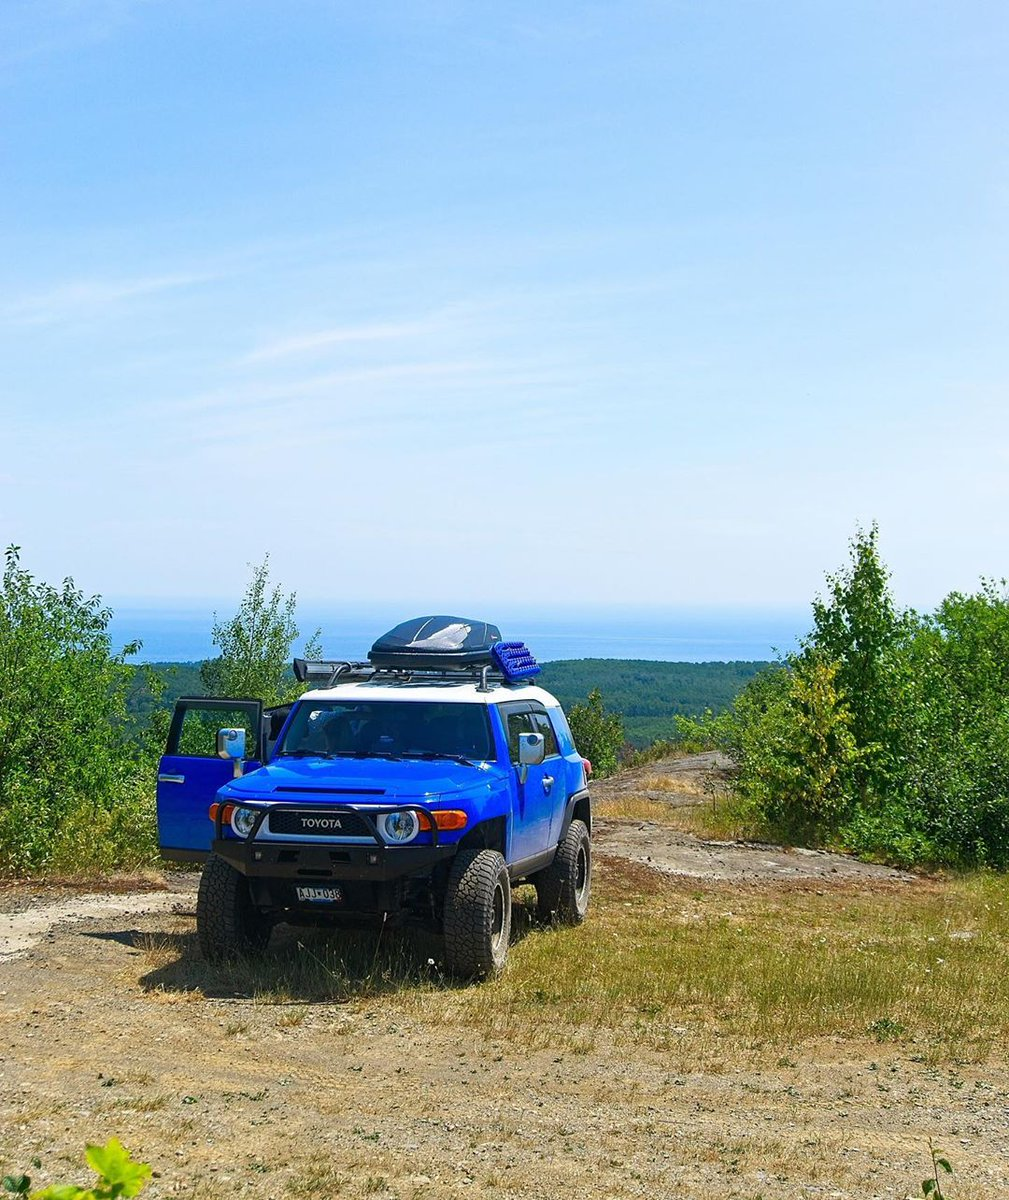 Here's some color to brighten your day! 💙  .  .  .  .  @blue_tortise    #fj #fjcruiser #4wd #toyota4runner #toyota4x4 #letsgoplaces #4x4 #sr5 #trd #t4r #offroad #expedition #prerunner #4runnernation #adventuremobile #toyota #yotanation #toyotatacoma #toyotataco https://t.co/vhOG8Tr6fV